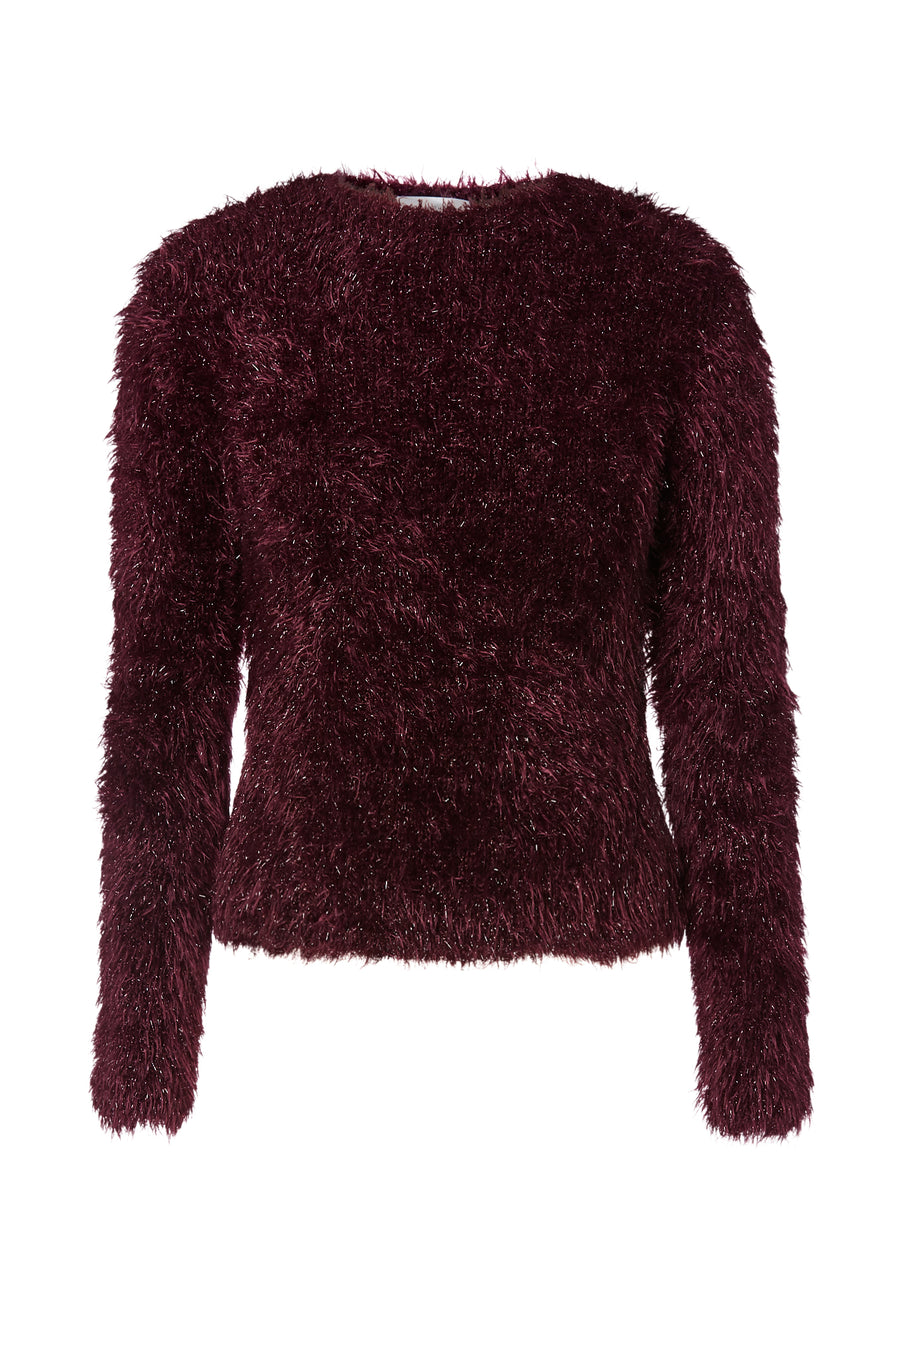 Tinsel Velvet Sweater, crew neck, slips on over the head, Color Burgundy